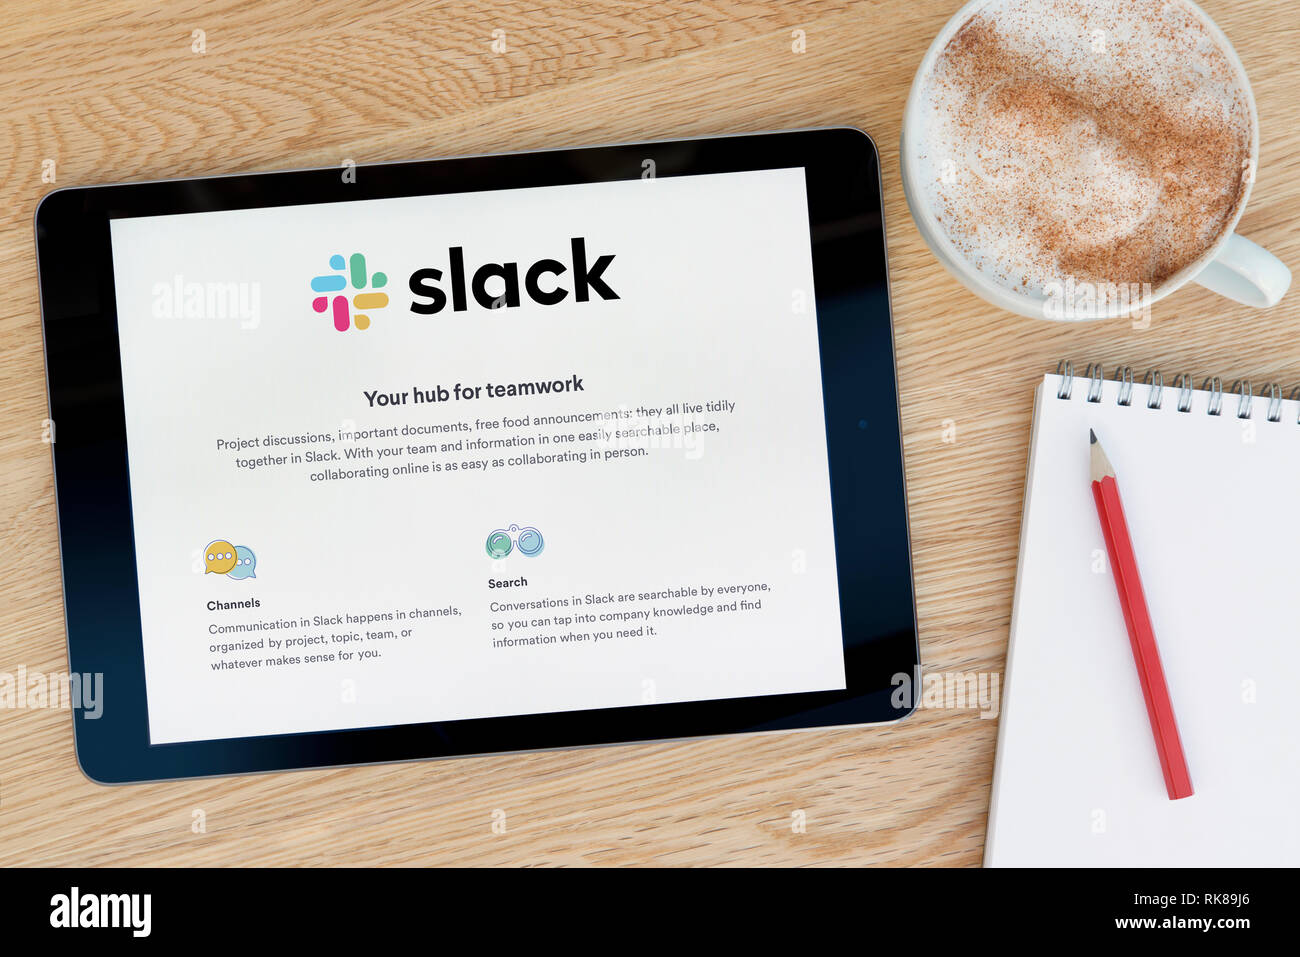 The Slack website features on an iPad tablet device which rests on a wooden table beside a notepad (Editorial use only). - Stock Image